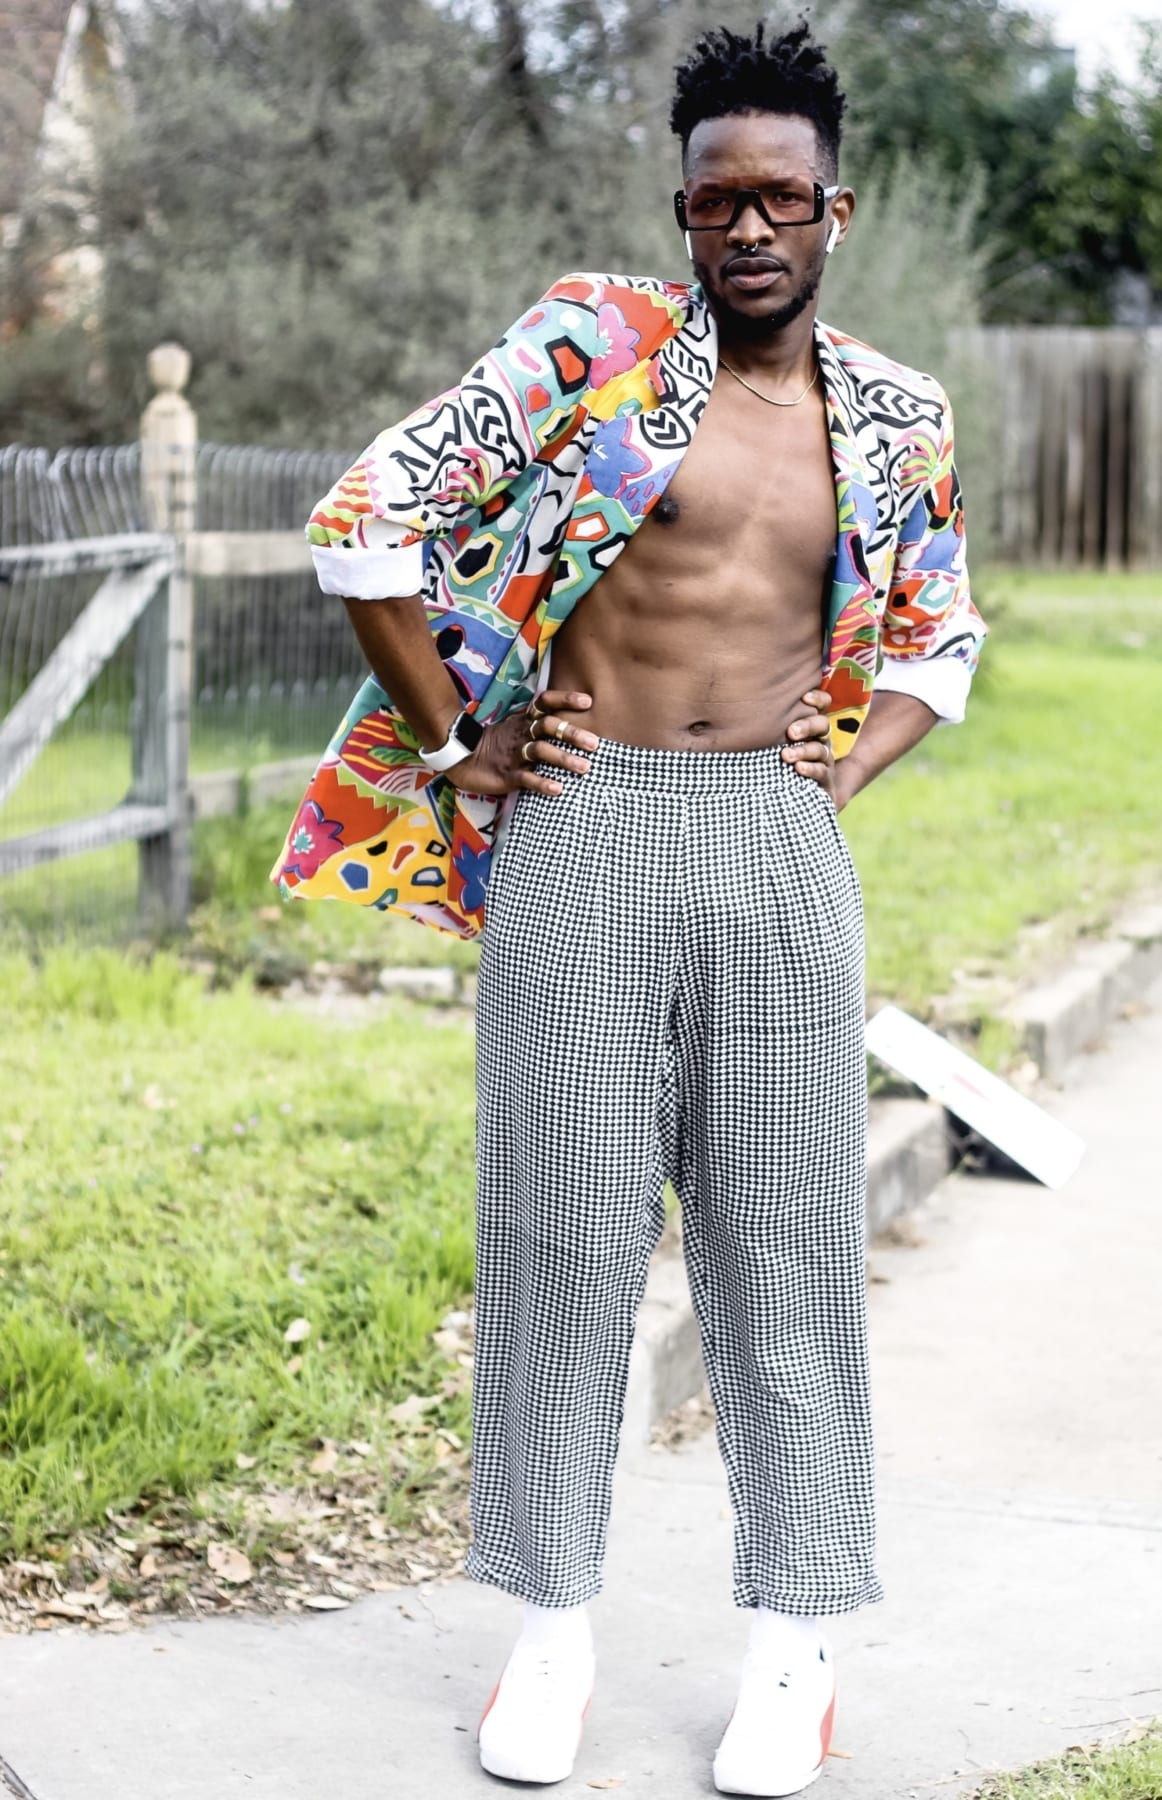 Drake Muyinza poses in his fifth outfit during the Austin Marathon. He turned the 26.2-mile course into the World's Longest Fashion Runway!